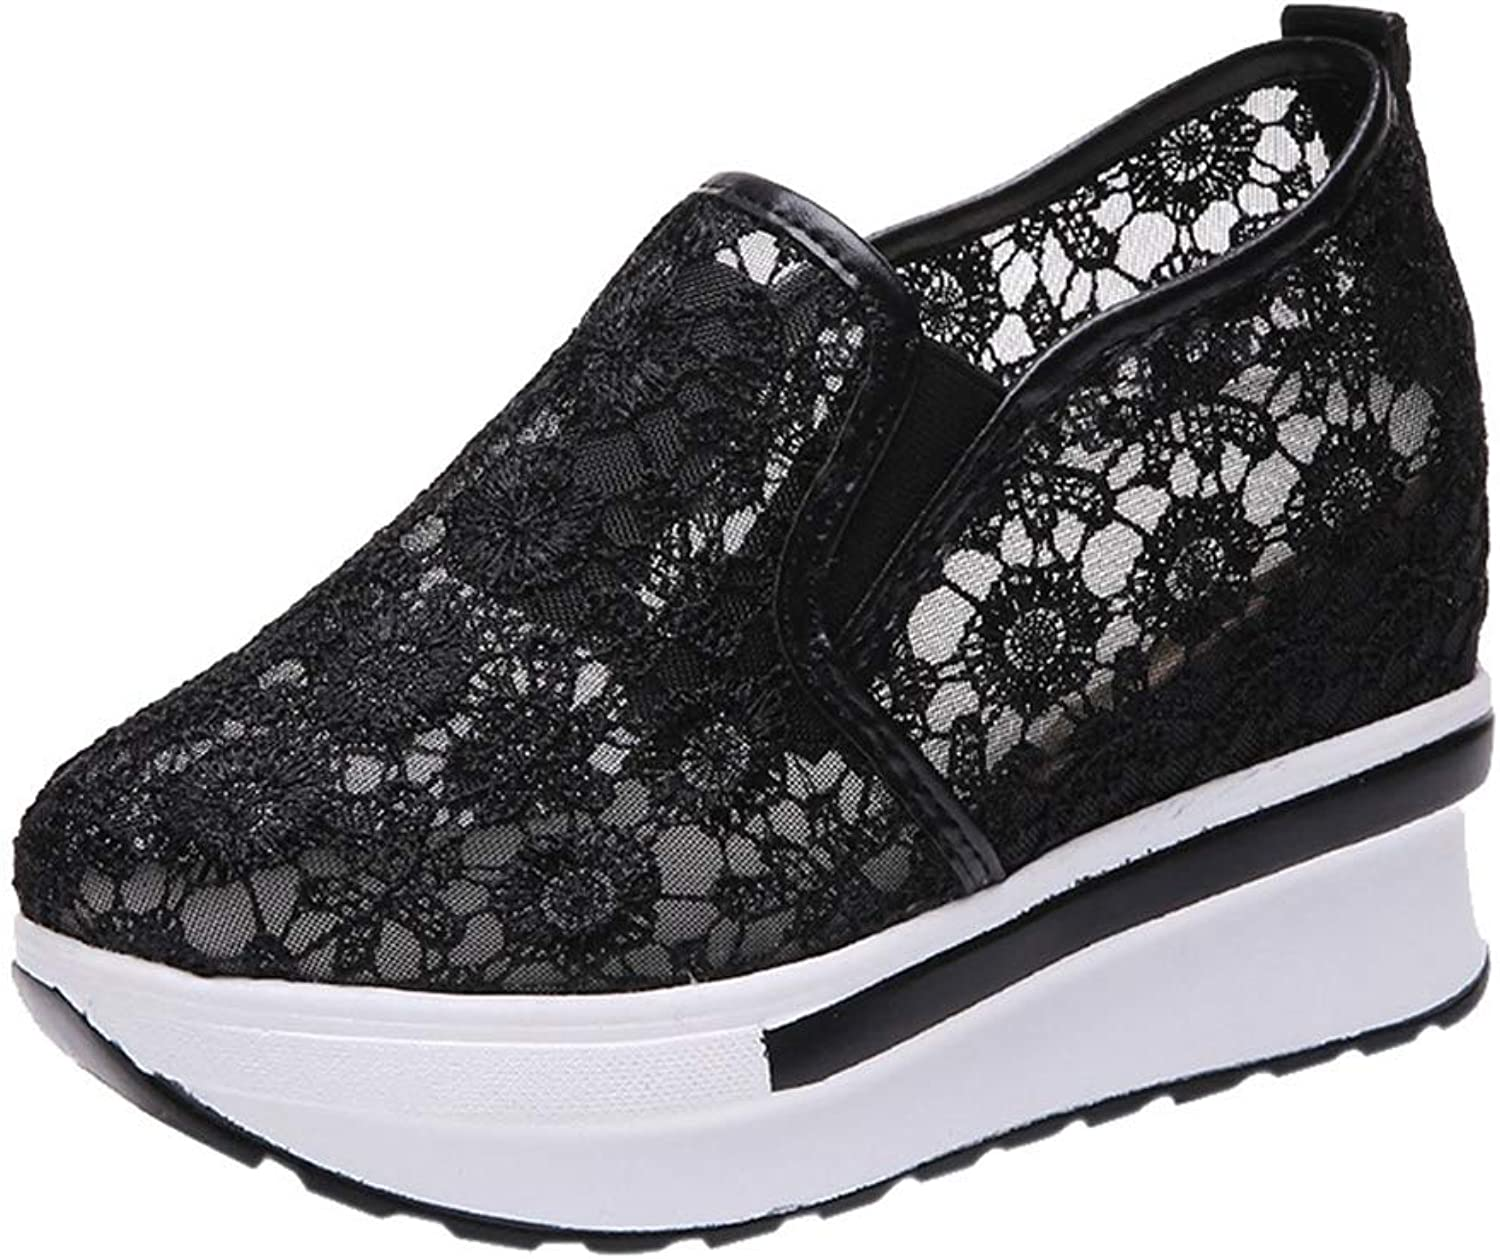 Women Summer Bud Mesh Face Single Wedge Heel shoes Breathable Inner Increase Casual Flat Casual shoes